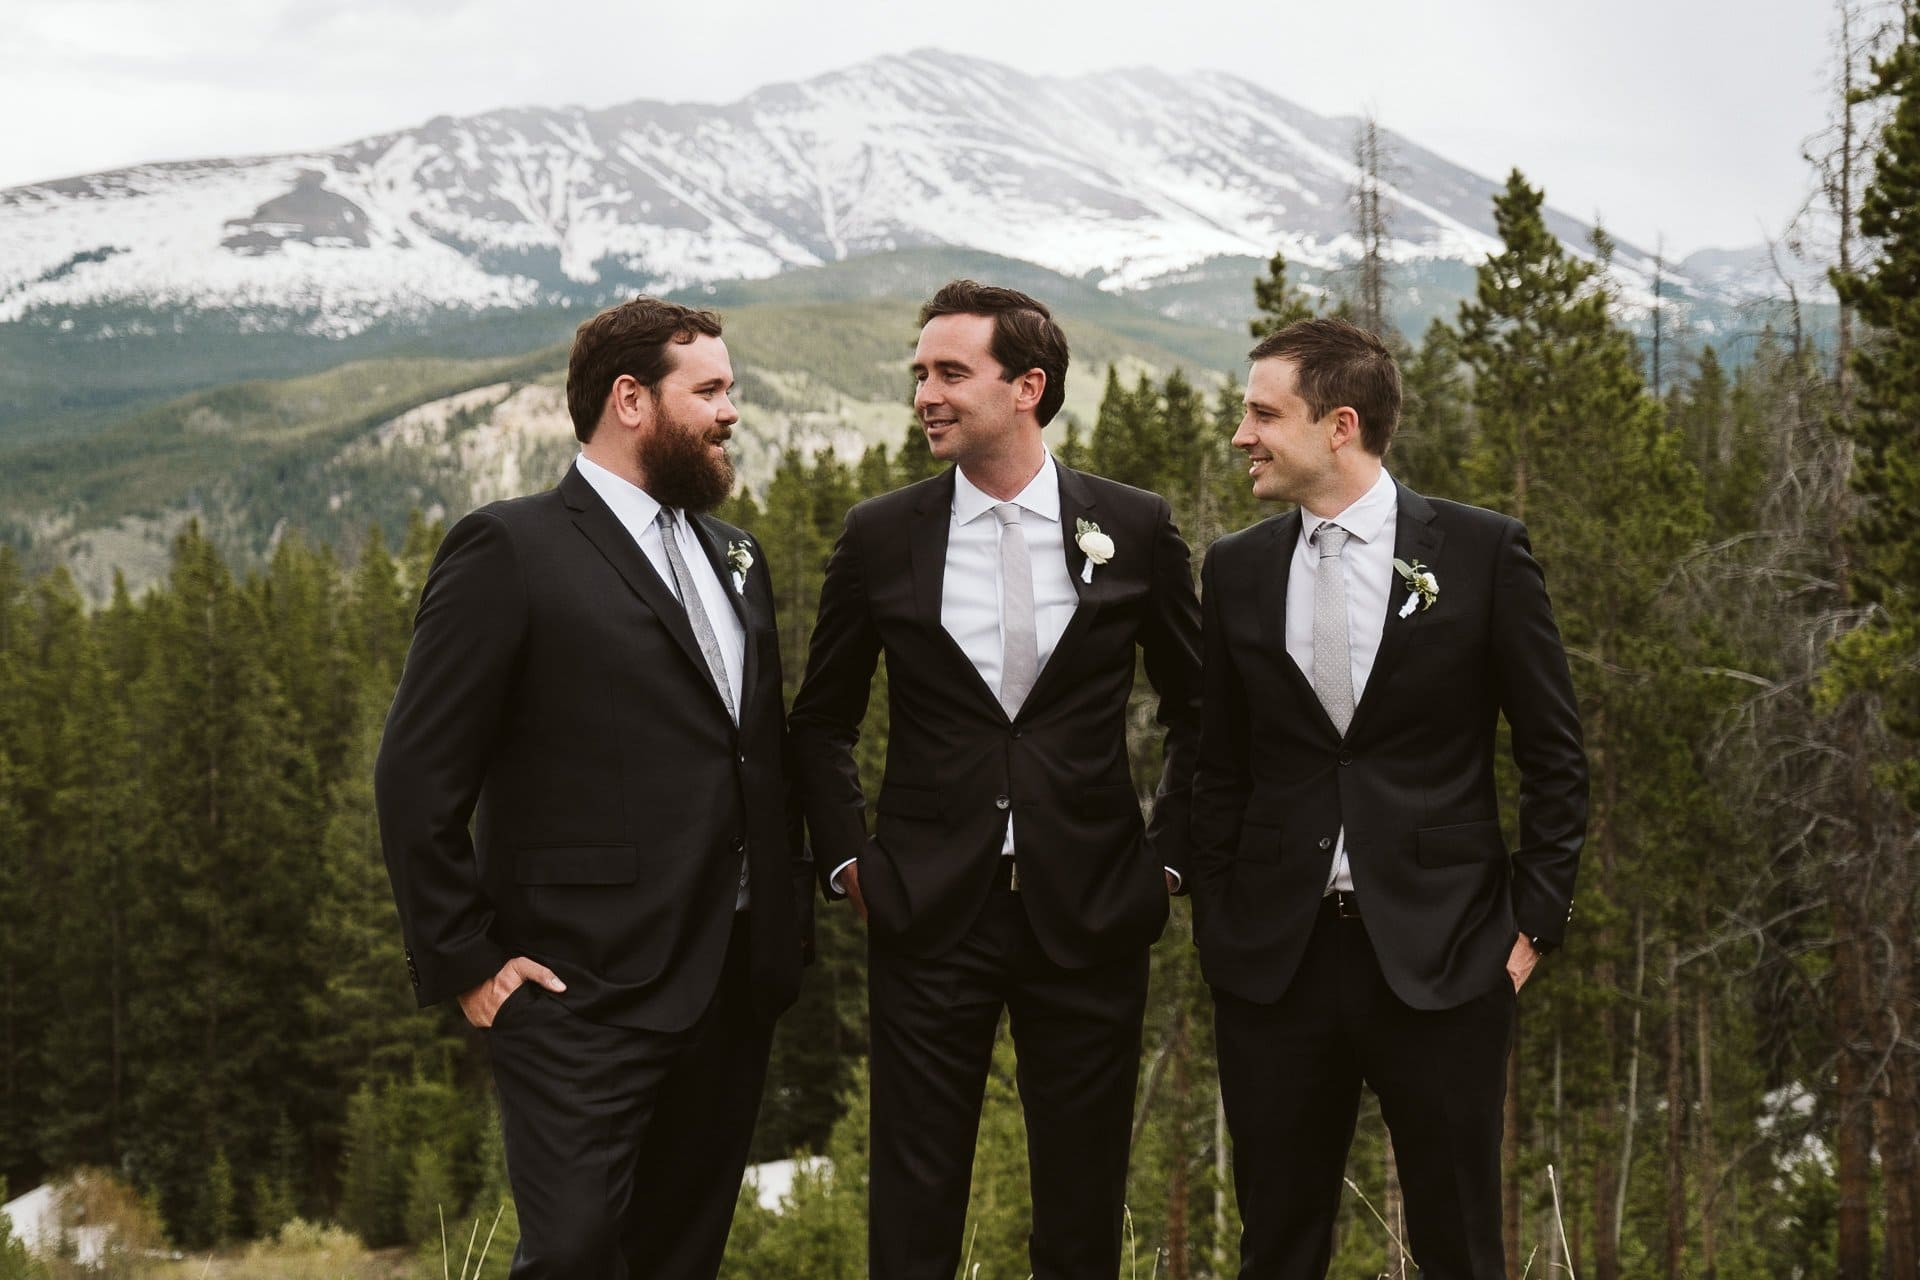 Bride and groom with wedding party portraits at Ten Mile Station, Breckenridge ski resort wedding, Colorado mountain wedding photographer